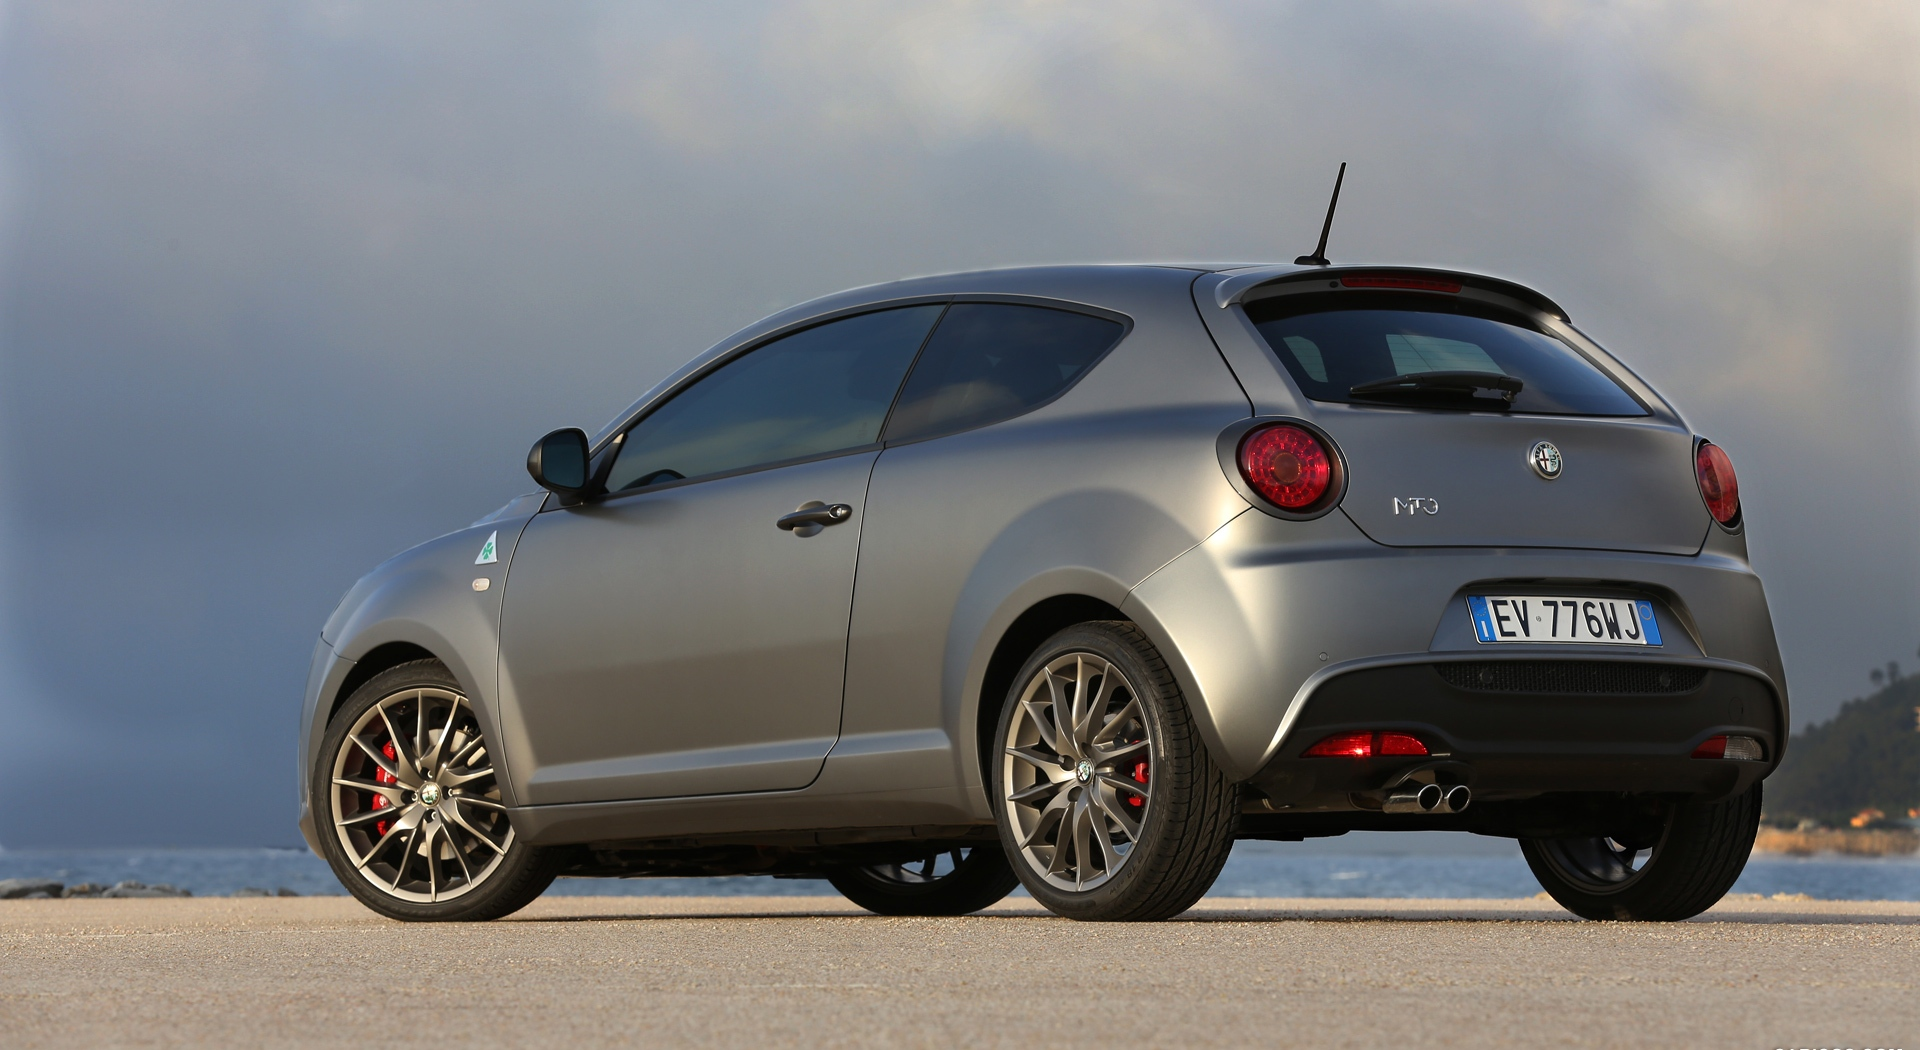 alfa romeo mito wallpaper side hd desktop wallpapers 4k hd. Black Bedroom Furniture Sets. Home Design Ideas